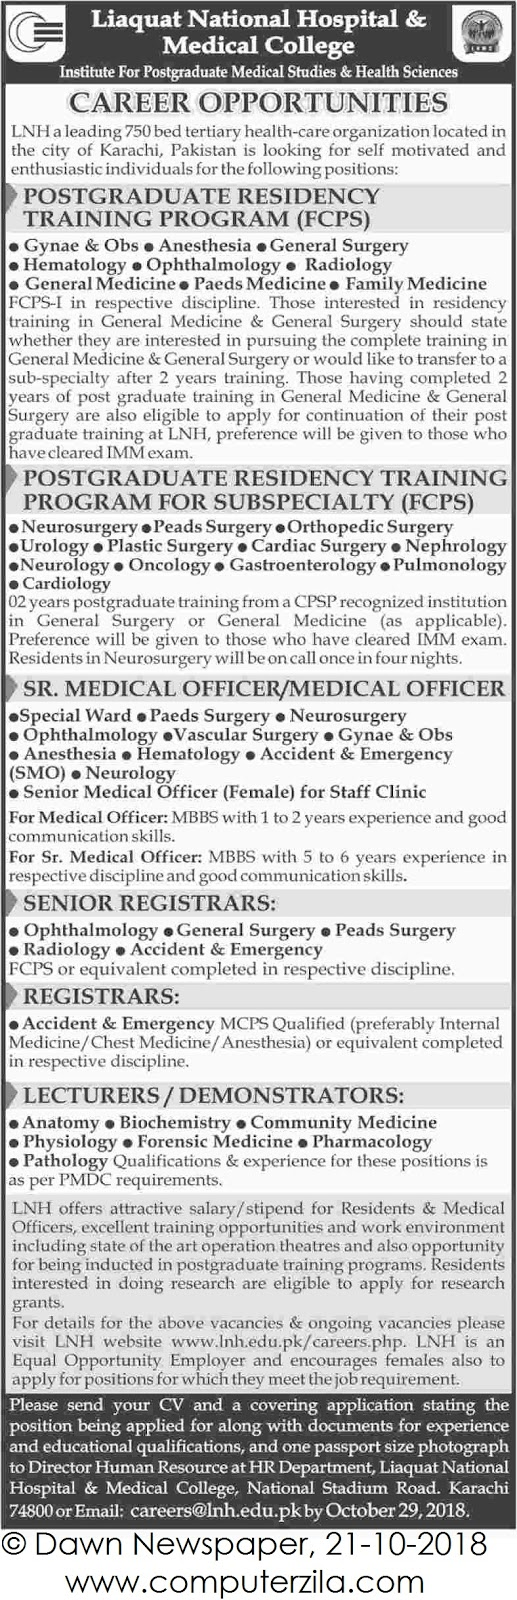 Career Opportunities at Liaquat National Hospital & Medical College